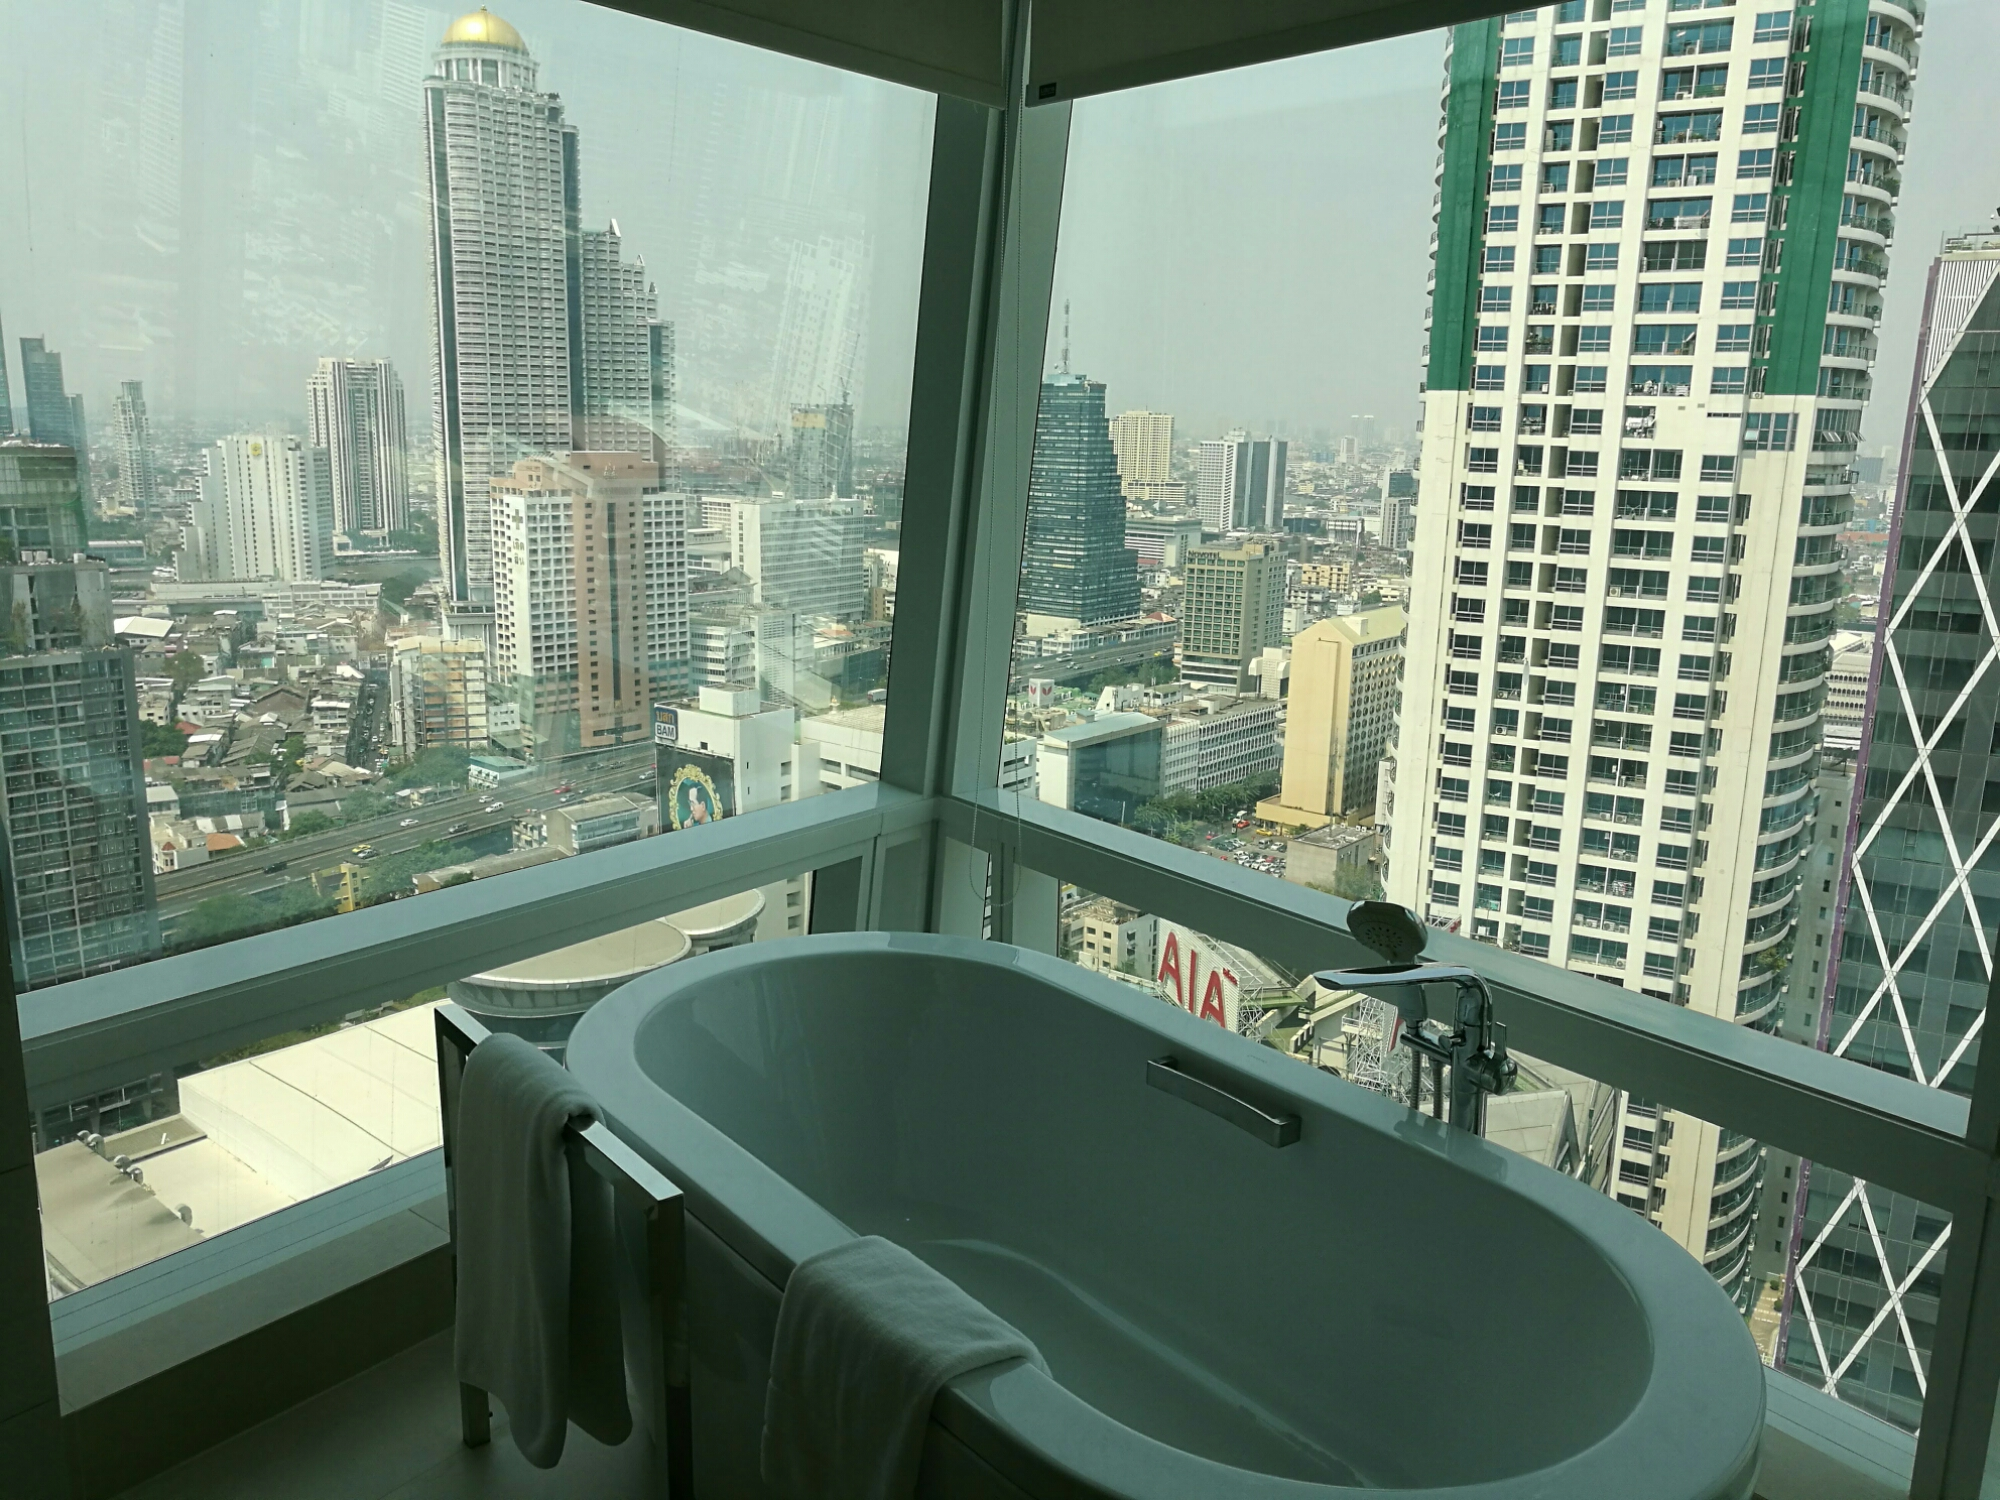 Bath with a view, Bangkok